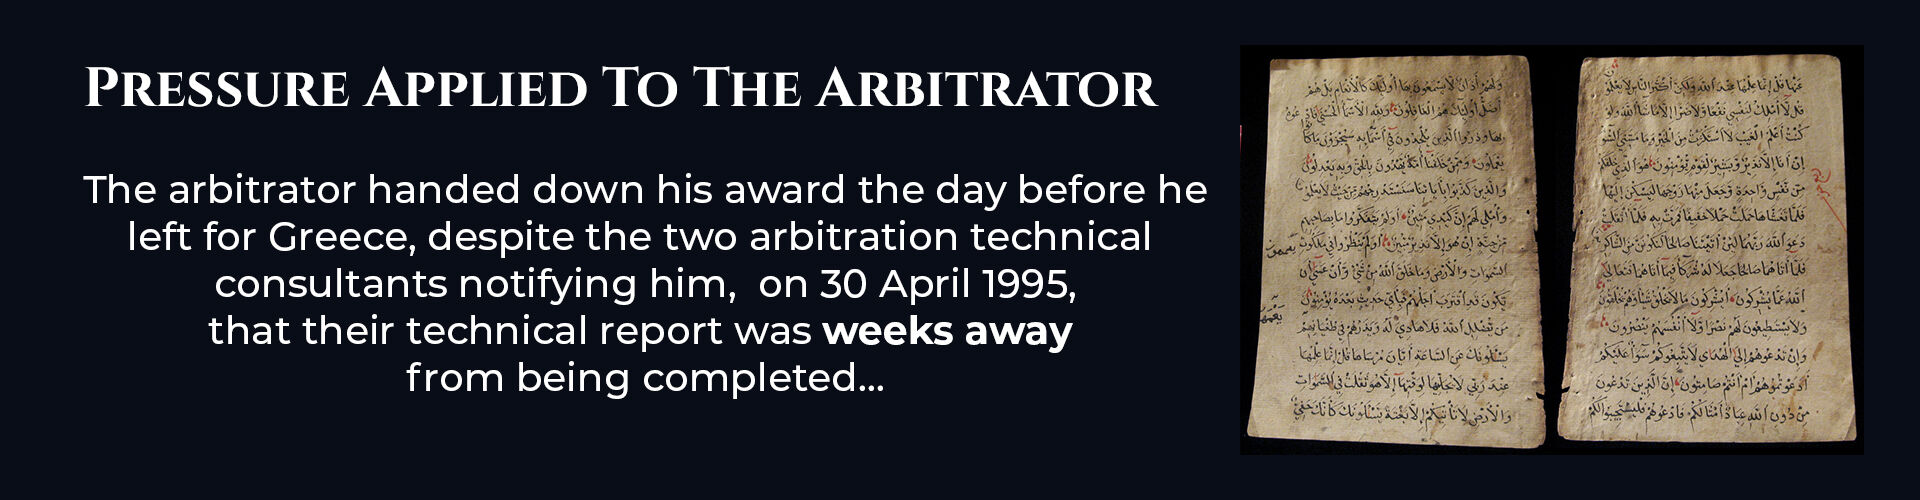 Absent Justice - Pressure Applied to the Arbitrator